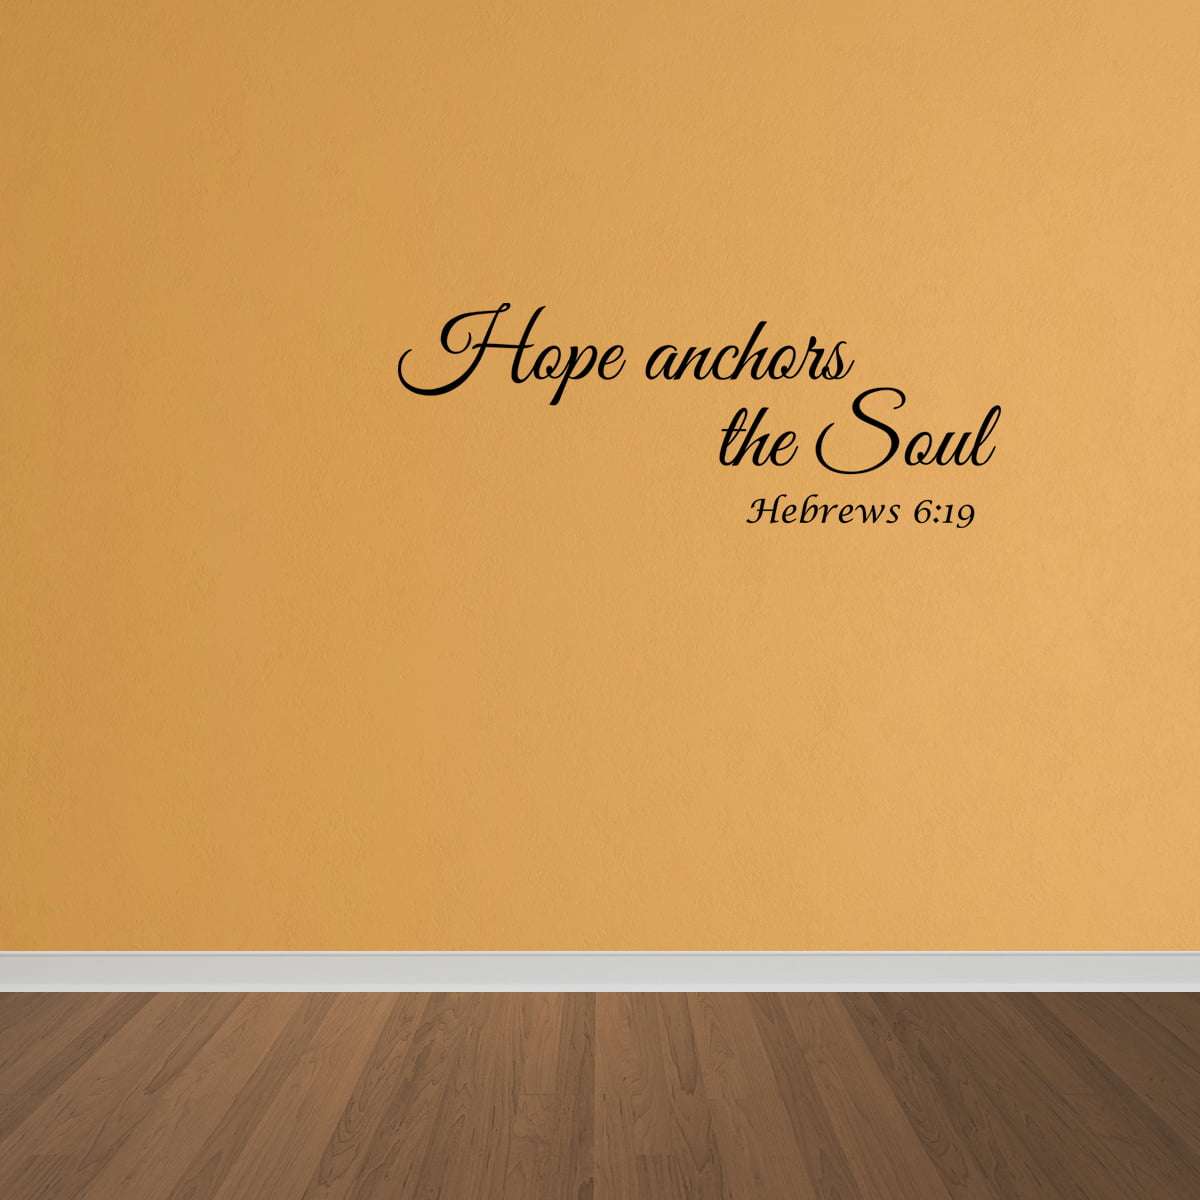 Wall Decal Quote Hebrews 6:19 Hope Anchors The Soul Bible Verse Art ...